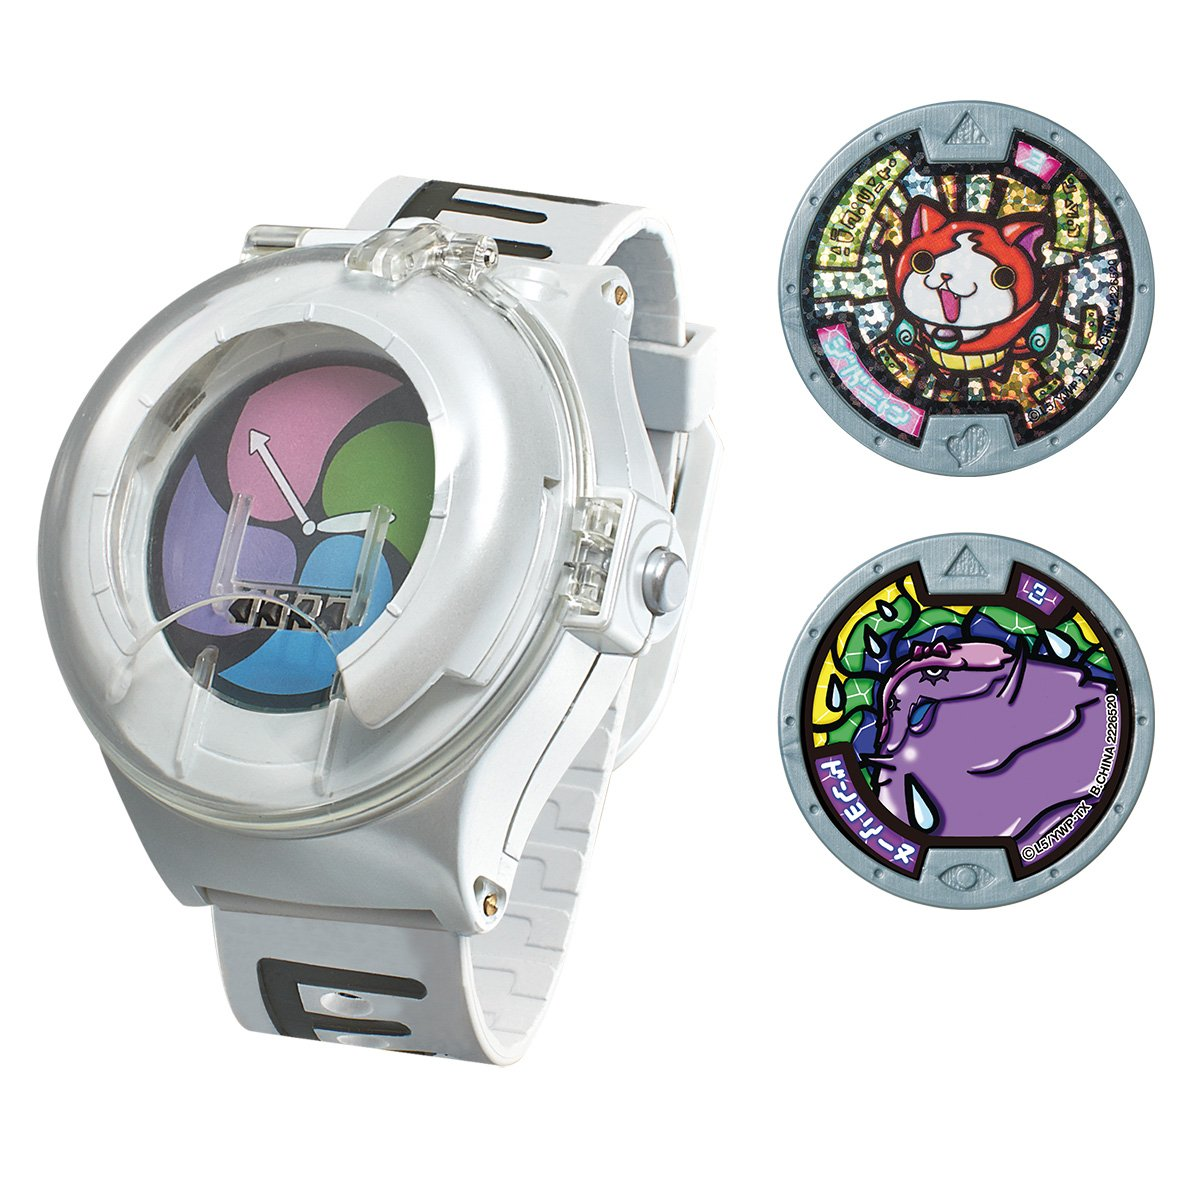 Bandai Dx Yokai Watch by Bandai